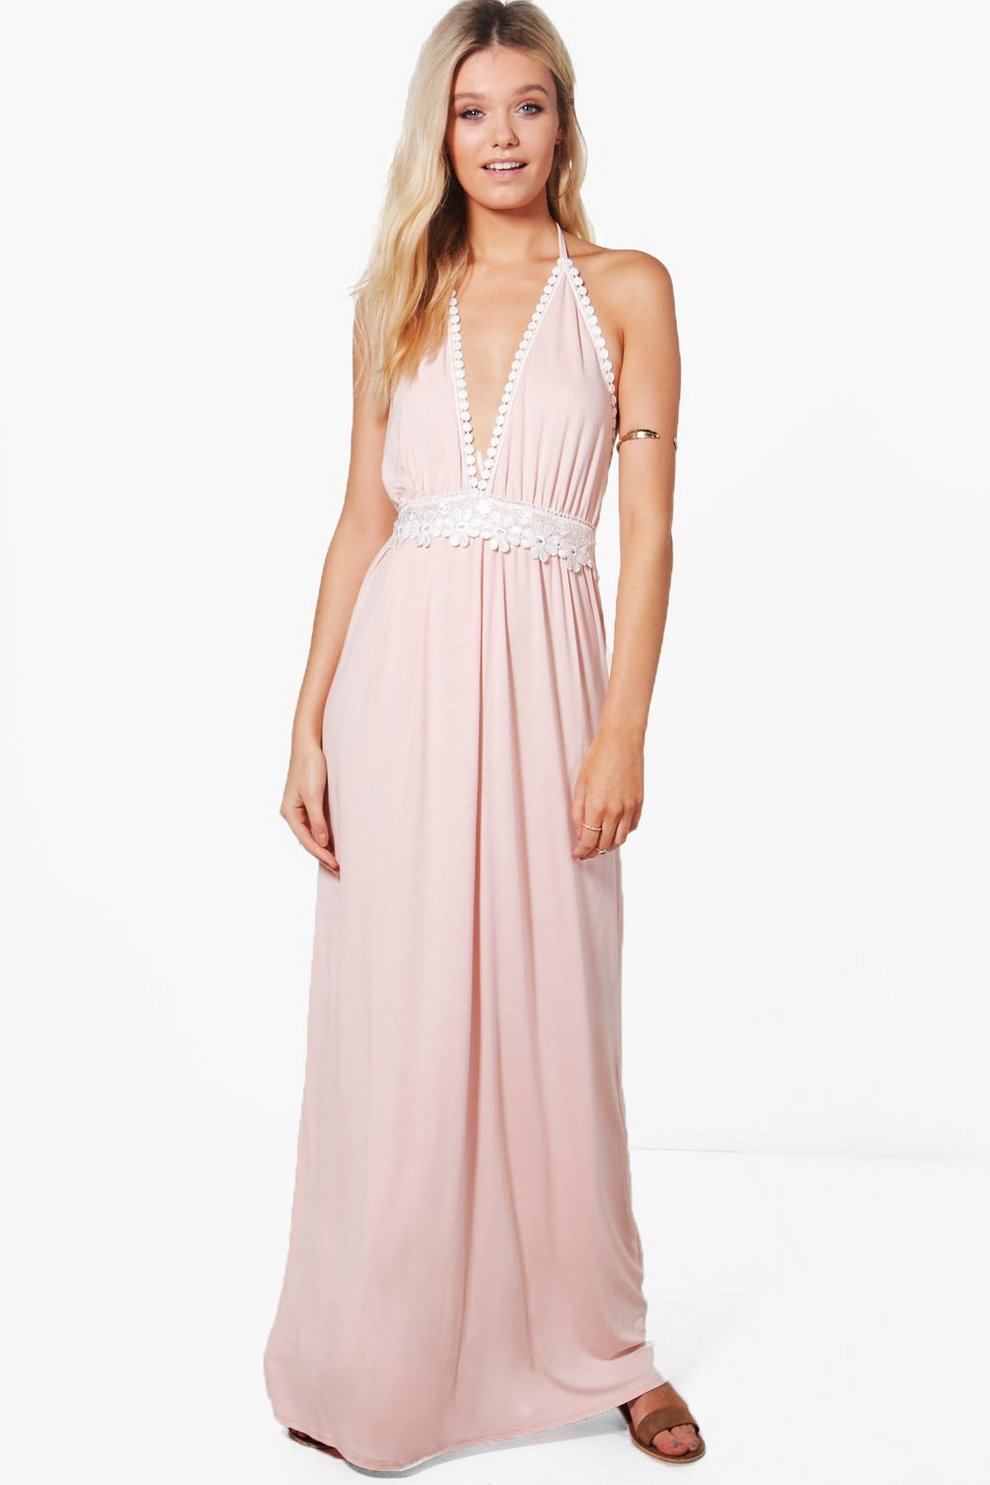 Boohoo Hollie Crochet Detail Halter Neck Maxi Dress Outlet Locations ALWgfn